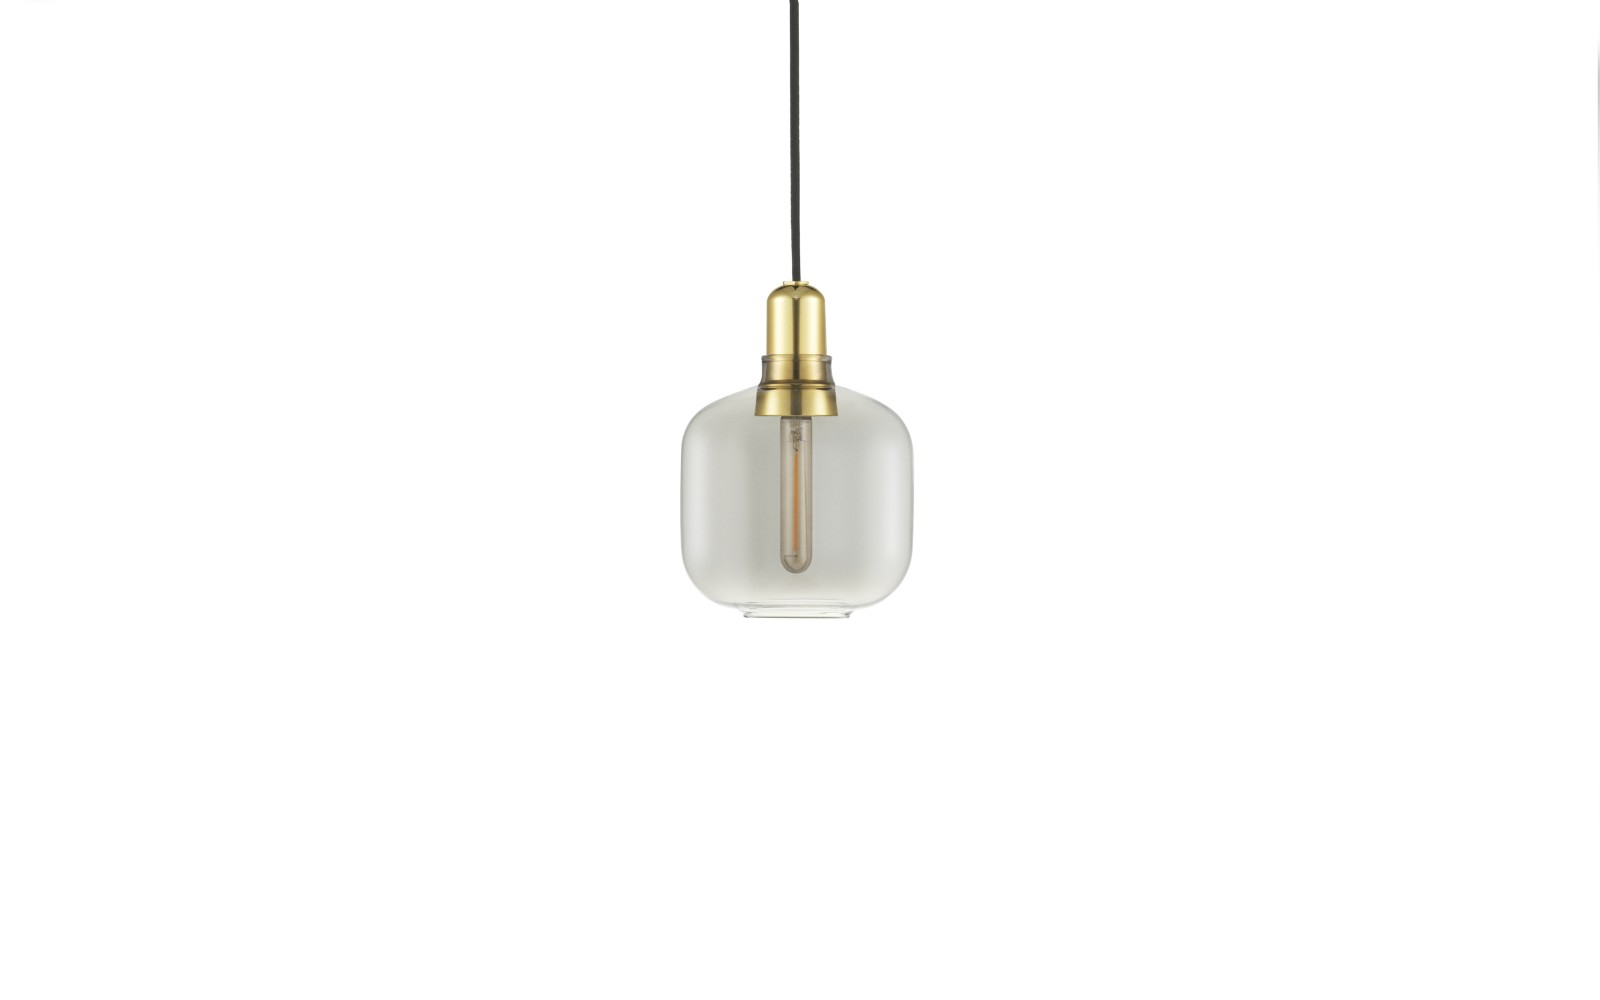 Amp Pendant Light Smoke/Brass, Small